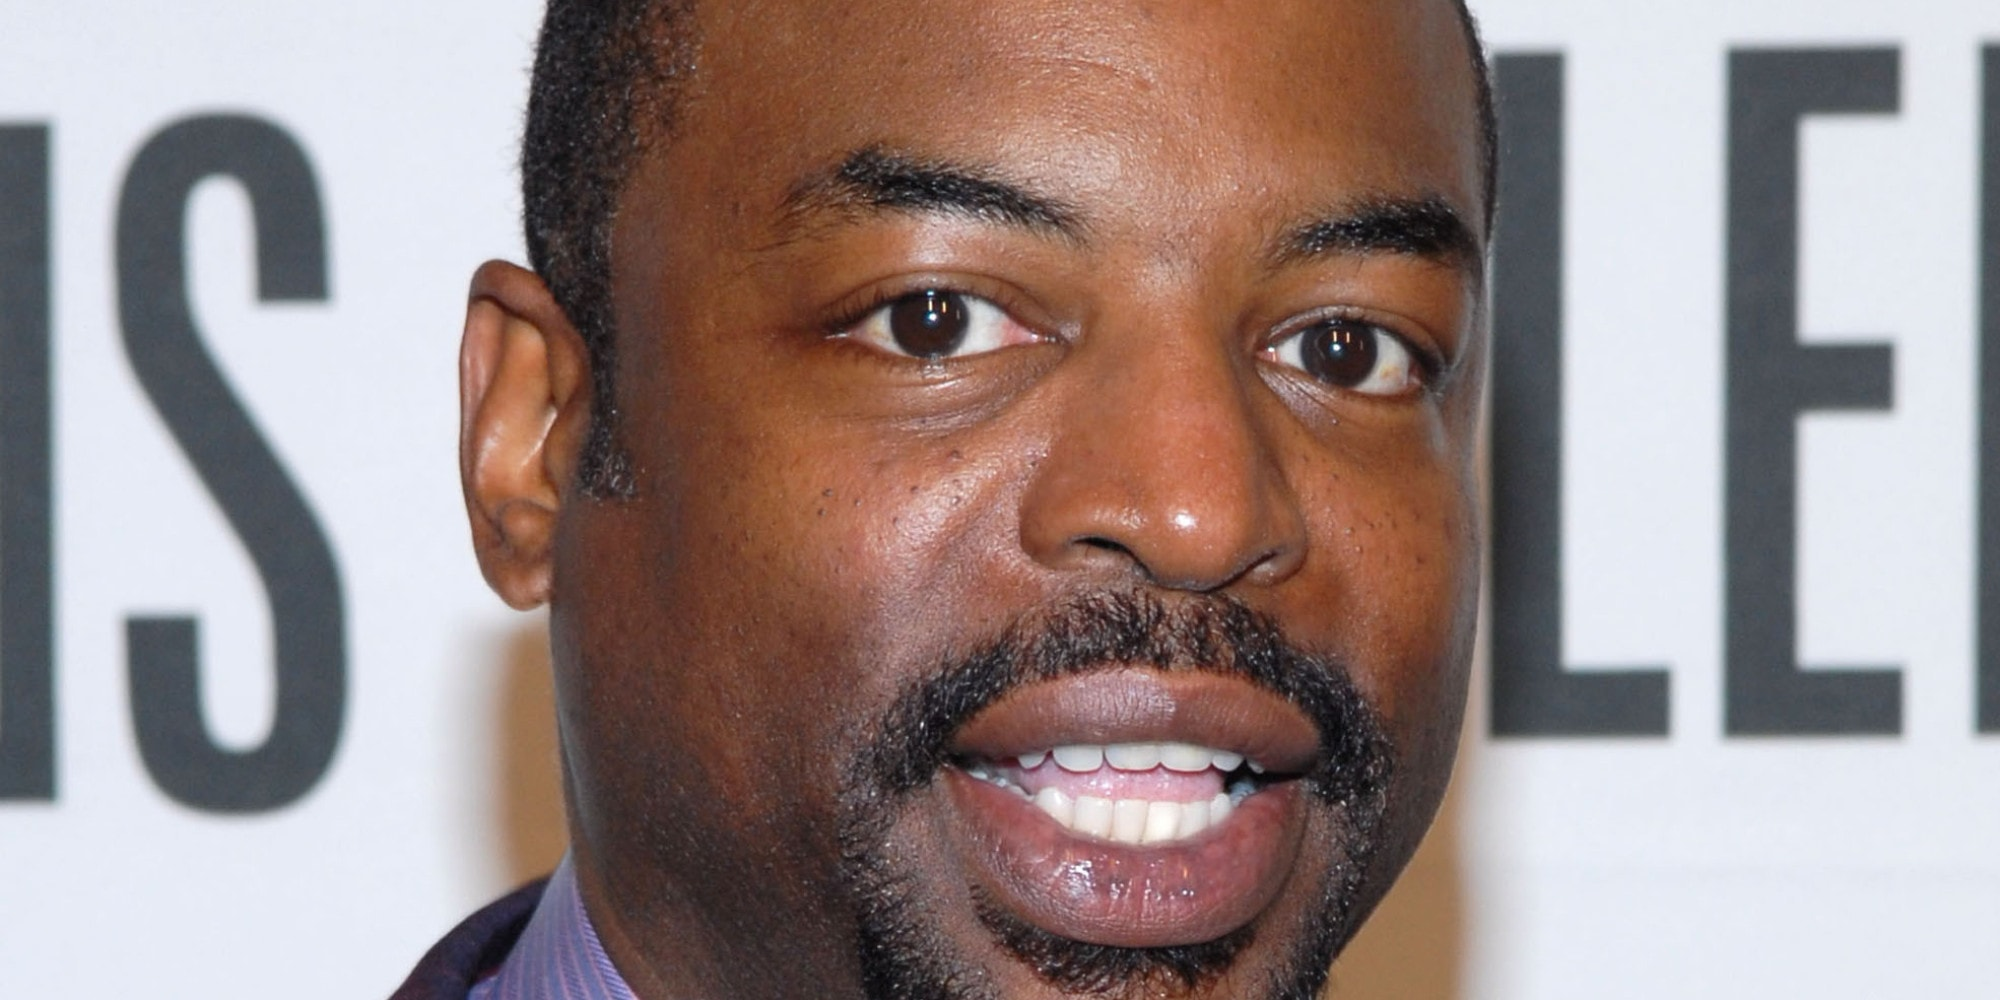 LeVar Burton Screensavers